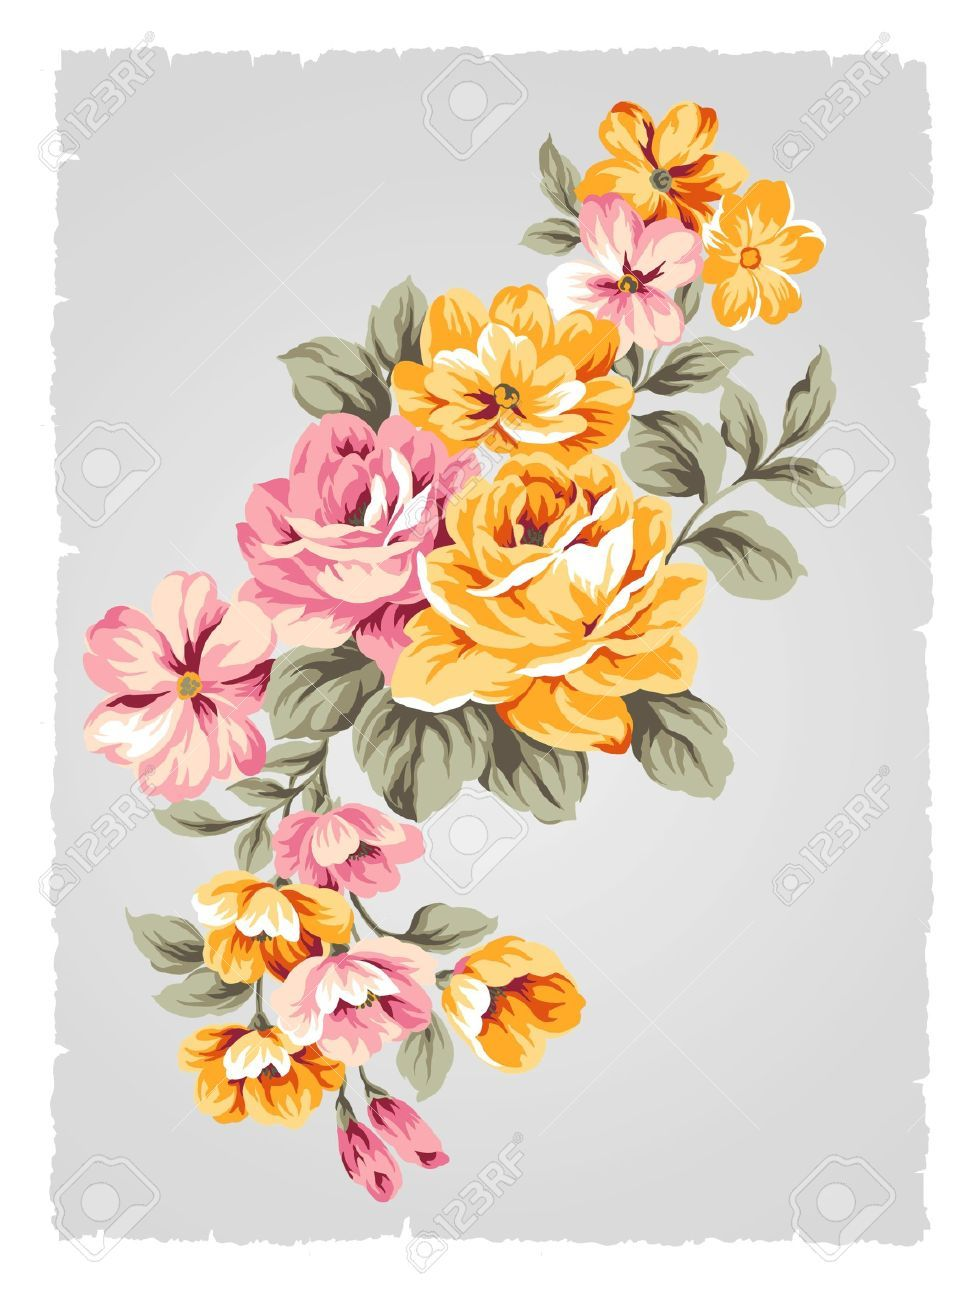 Designs of flowers for fabric painting the most beautiful flower 2017 pictures fabric painting images for ners s art sketch izmirmasajfo